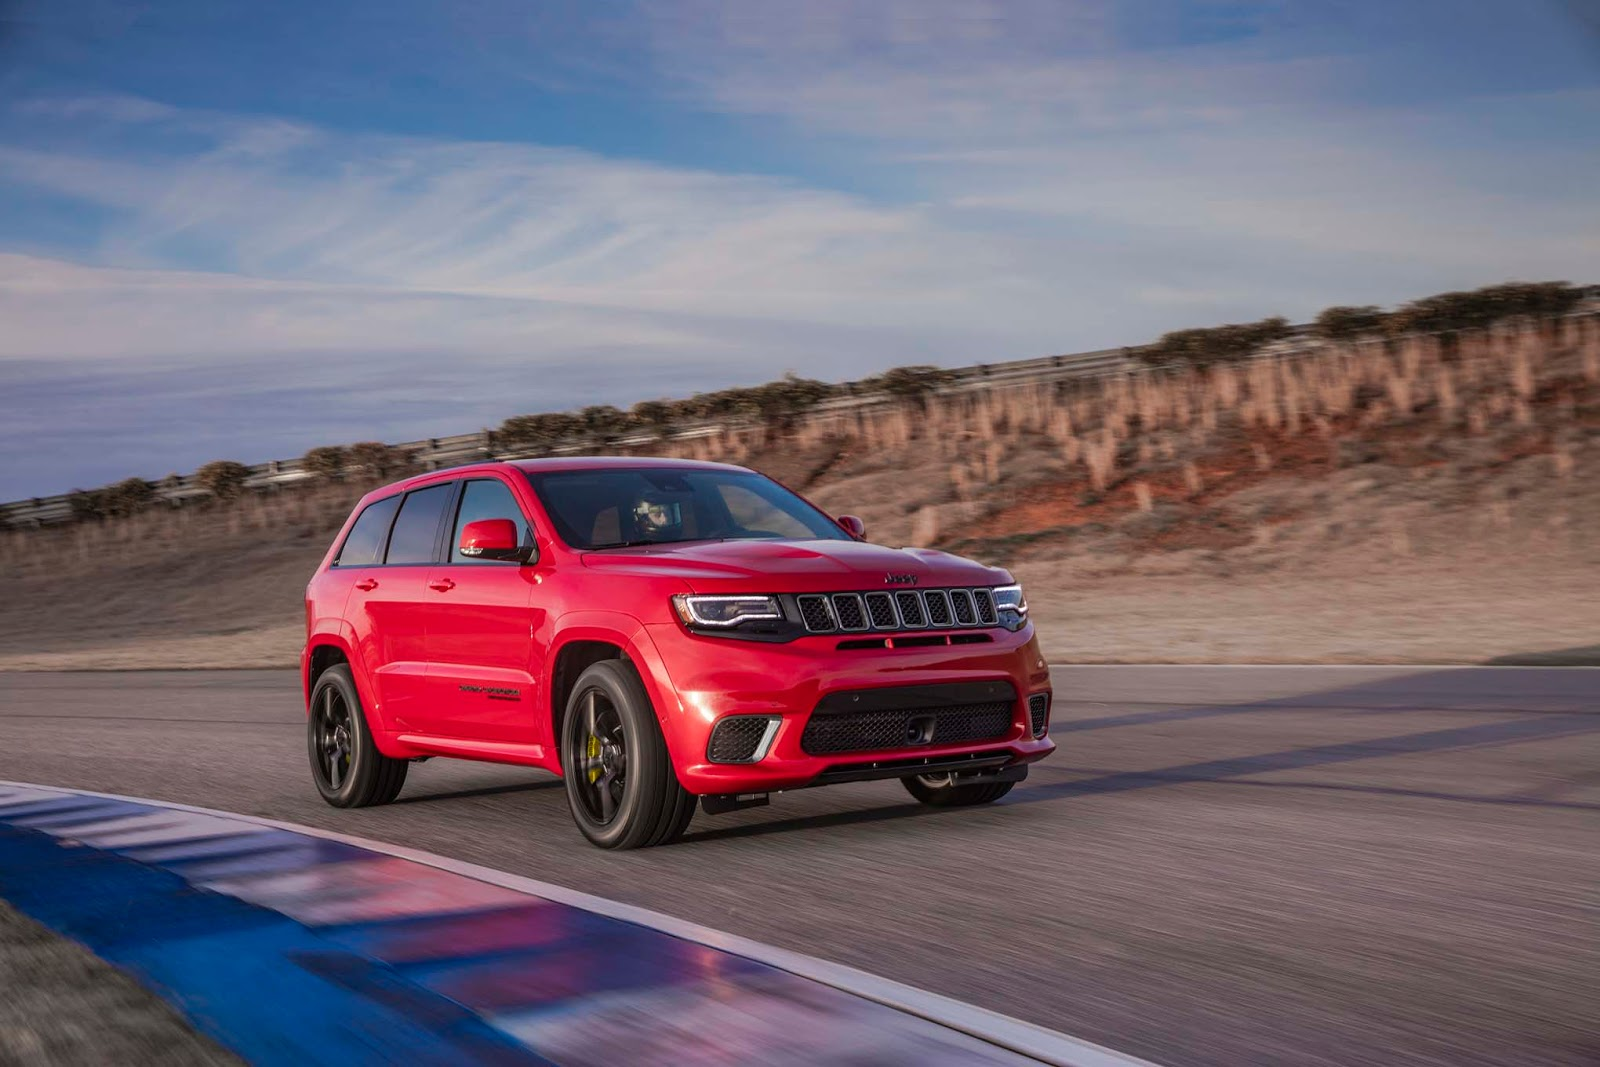 2018 jeep grand cherokee trackhawk is a 707 hp all wheel drive brute carscoops. Black Bedroom Furniture Sets. Home Design Ideas